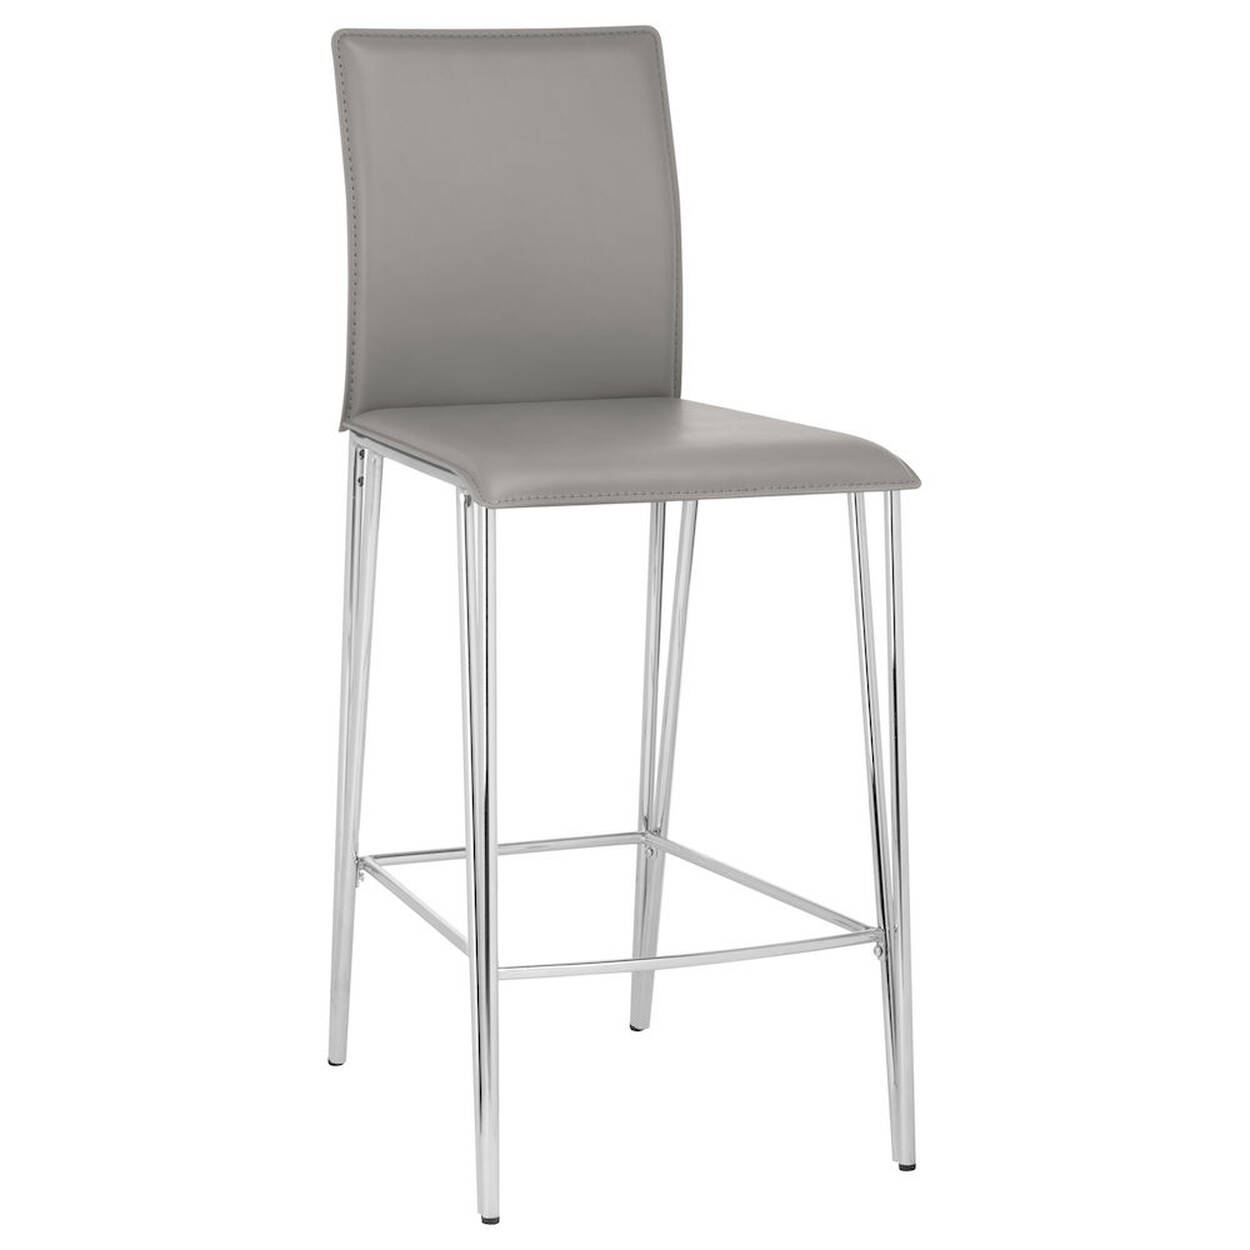 Awesome Faux Leather And Metal Counter Stool Gmtry Best Dining Table And Chair Ideas Images Gmtryco